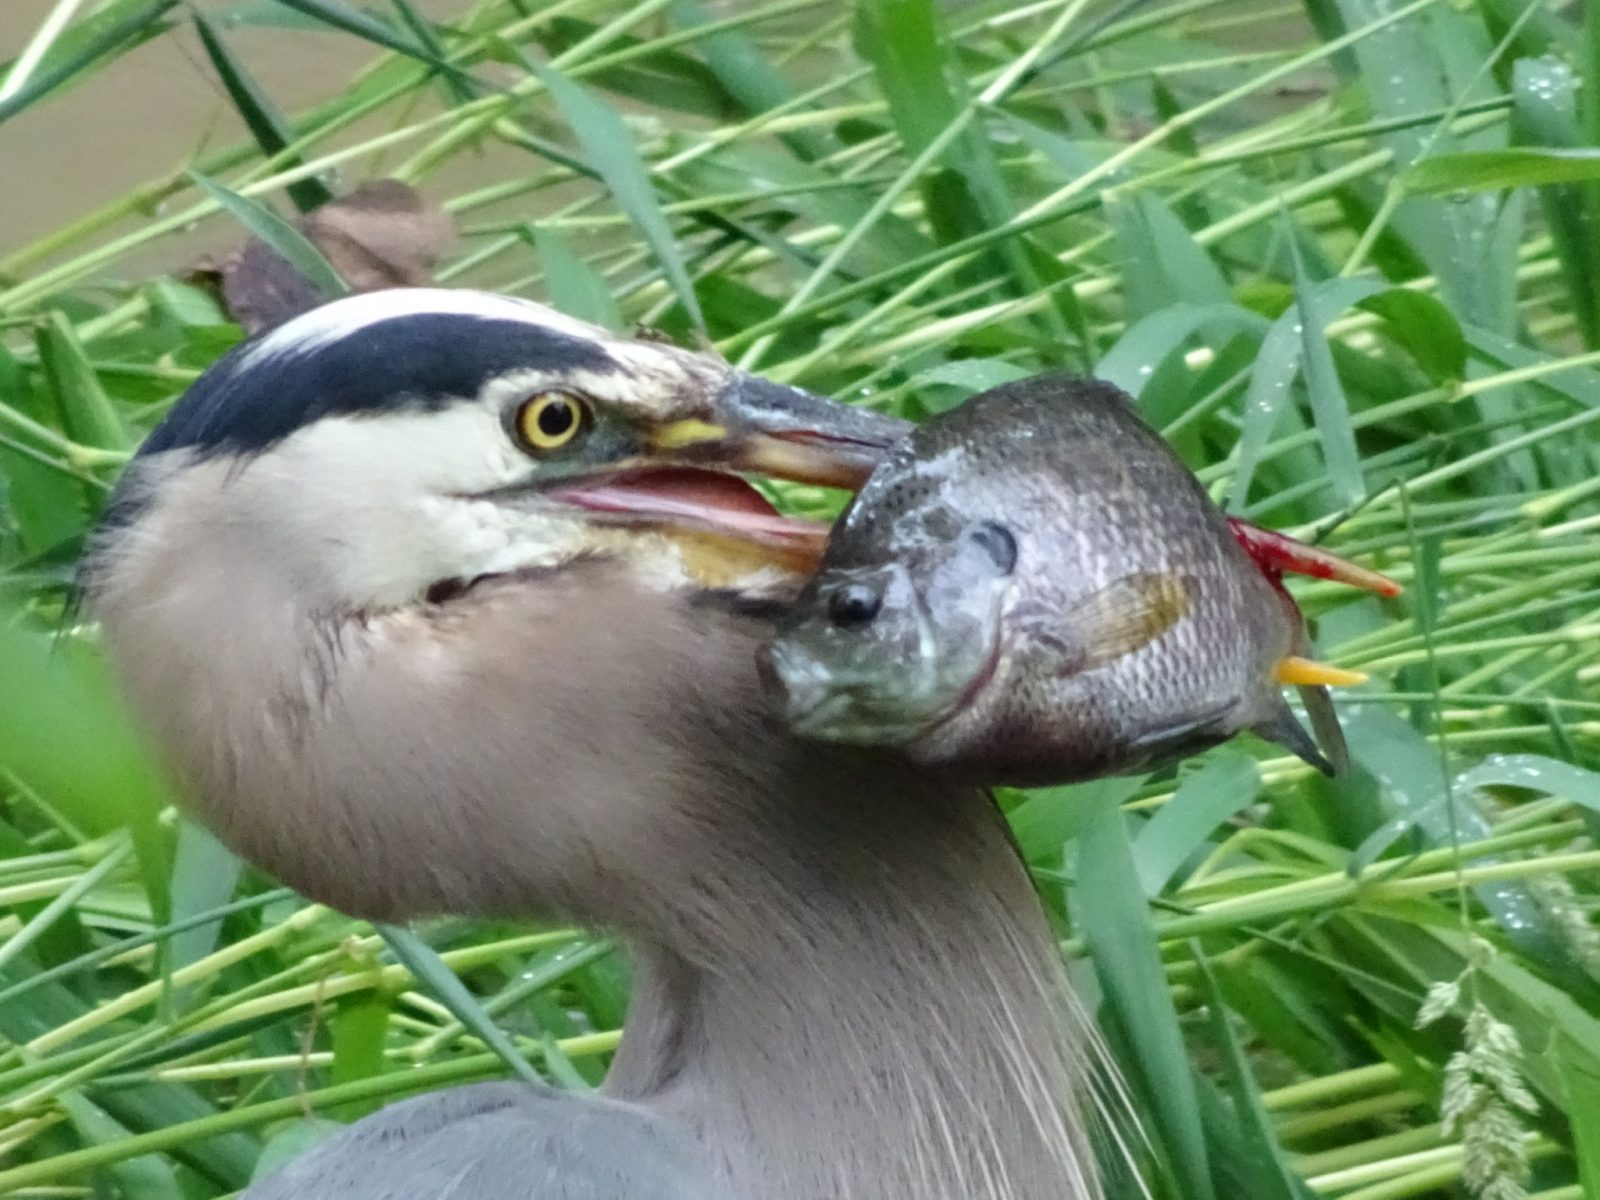 Blue Heron catching a fish